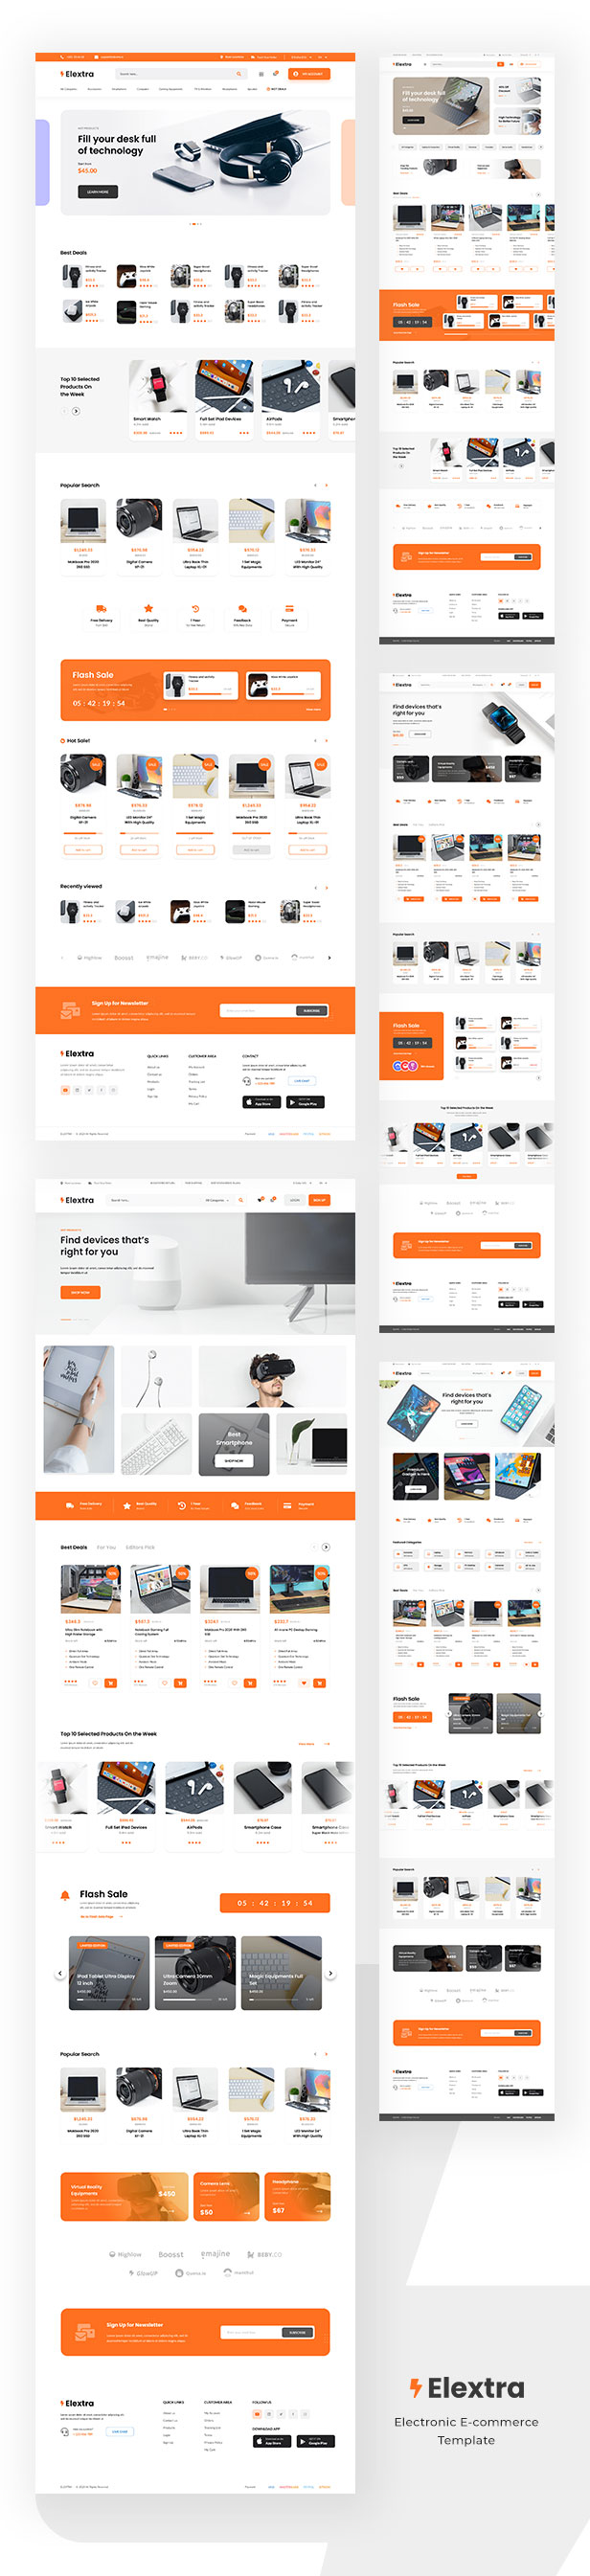 Elextra - Electronic eCommerce PSD Template - 2